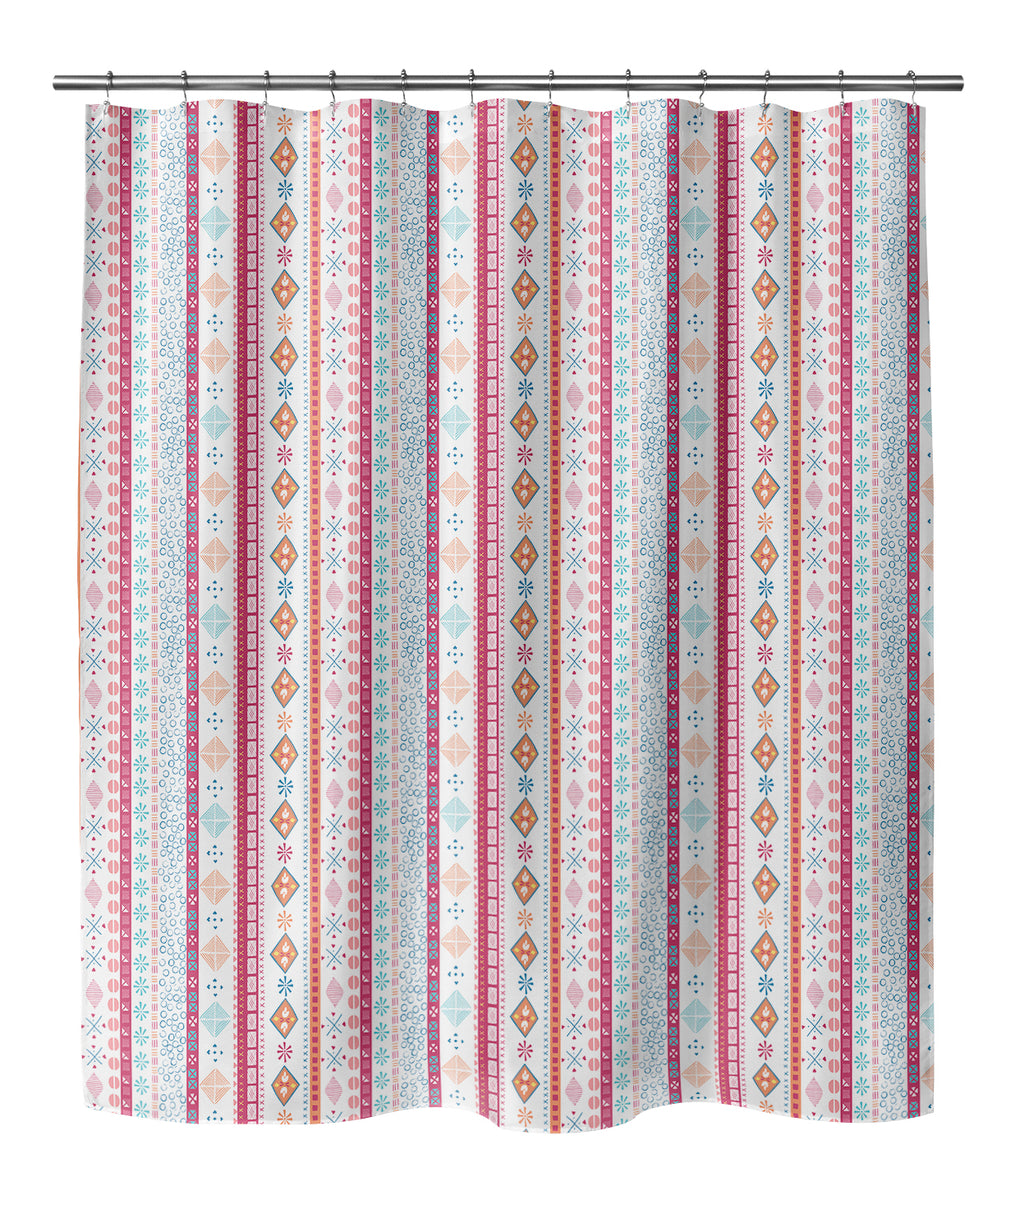 VIBRANT BOHO Shower Curtain By Chi Hey Lee